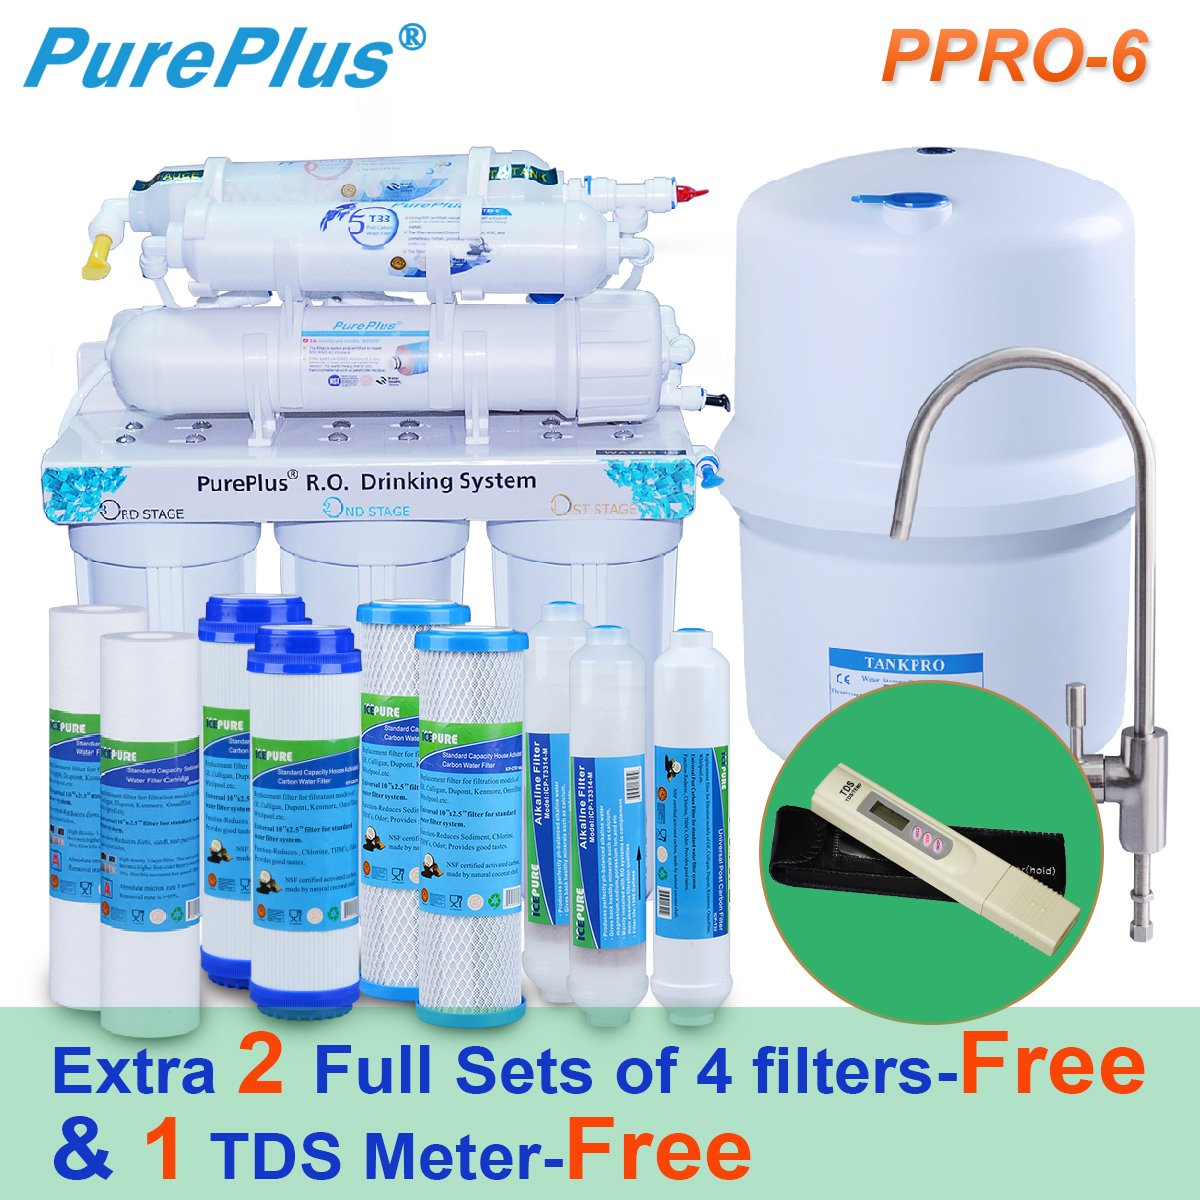 Pureplus PPRO-6 6-Stage Reverse Osmosis Drinking Water Filter System-80 GDP Plus extra 2 full sets of 4 filters&1 TDS Meter by PURE PLUS